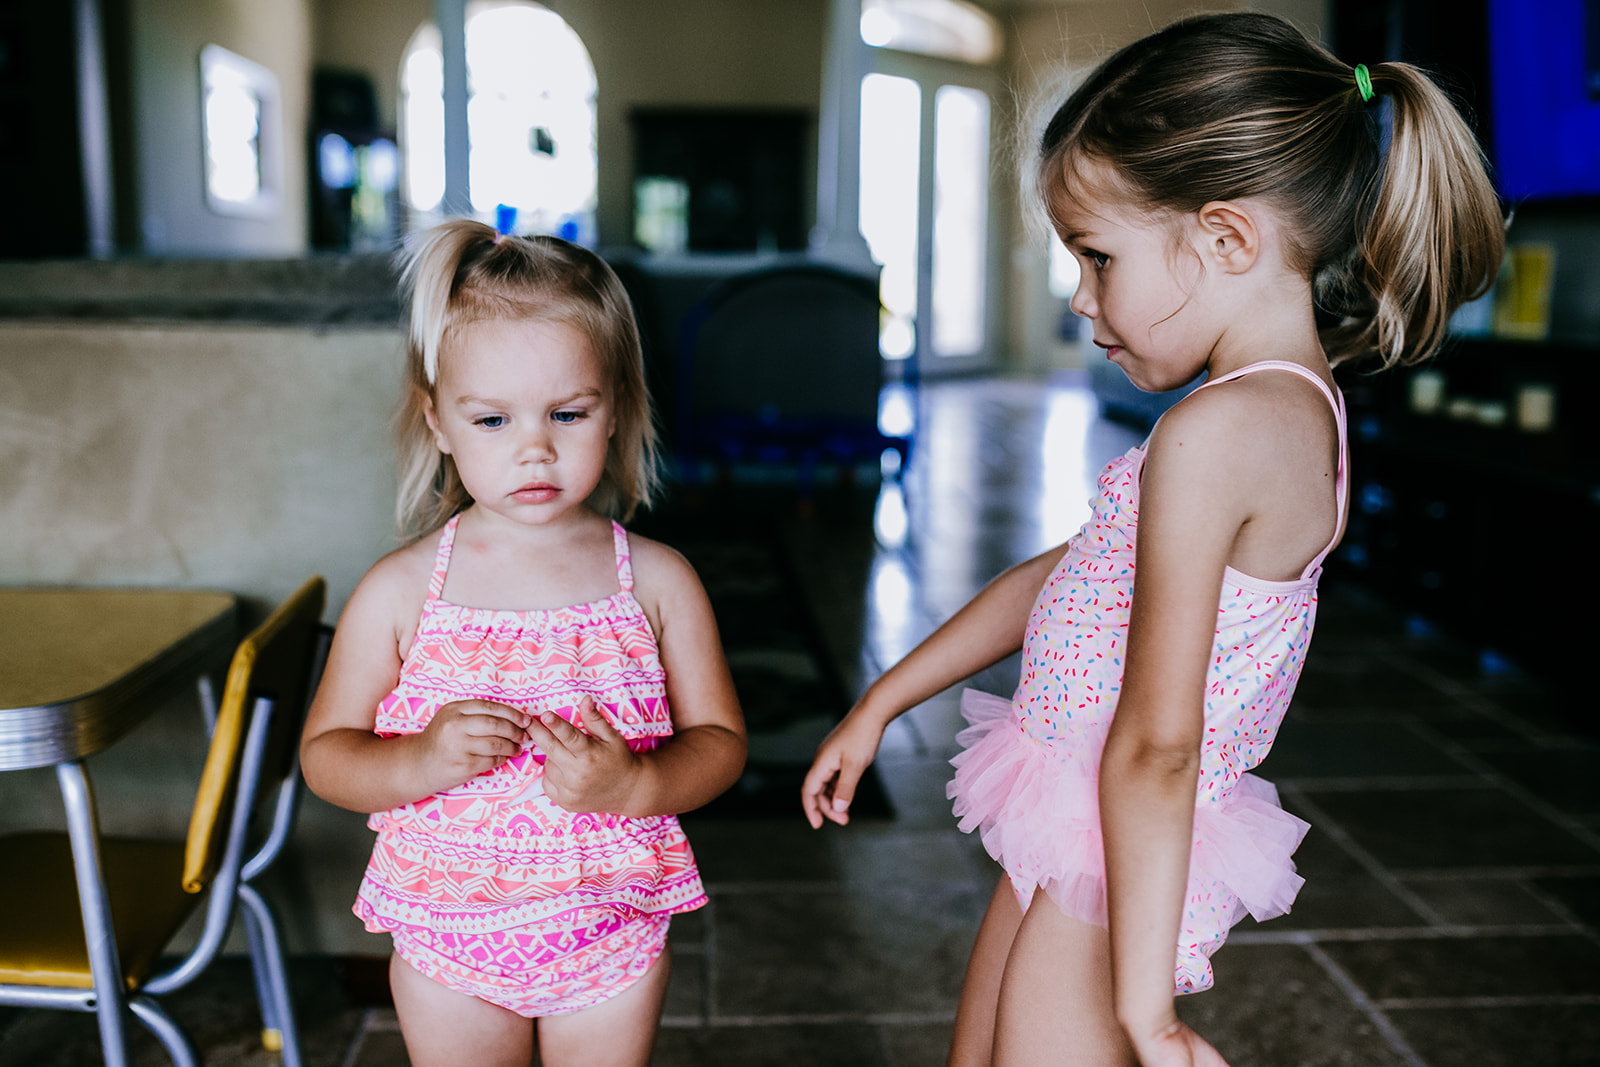 Sisters in their pink bathing suits wait to go in the pool